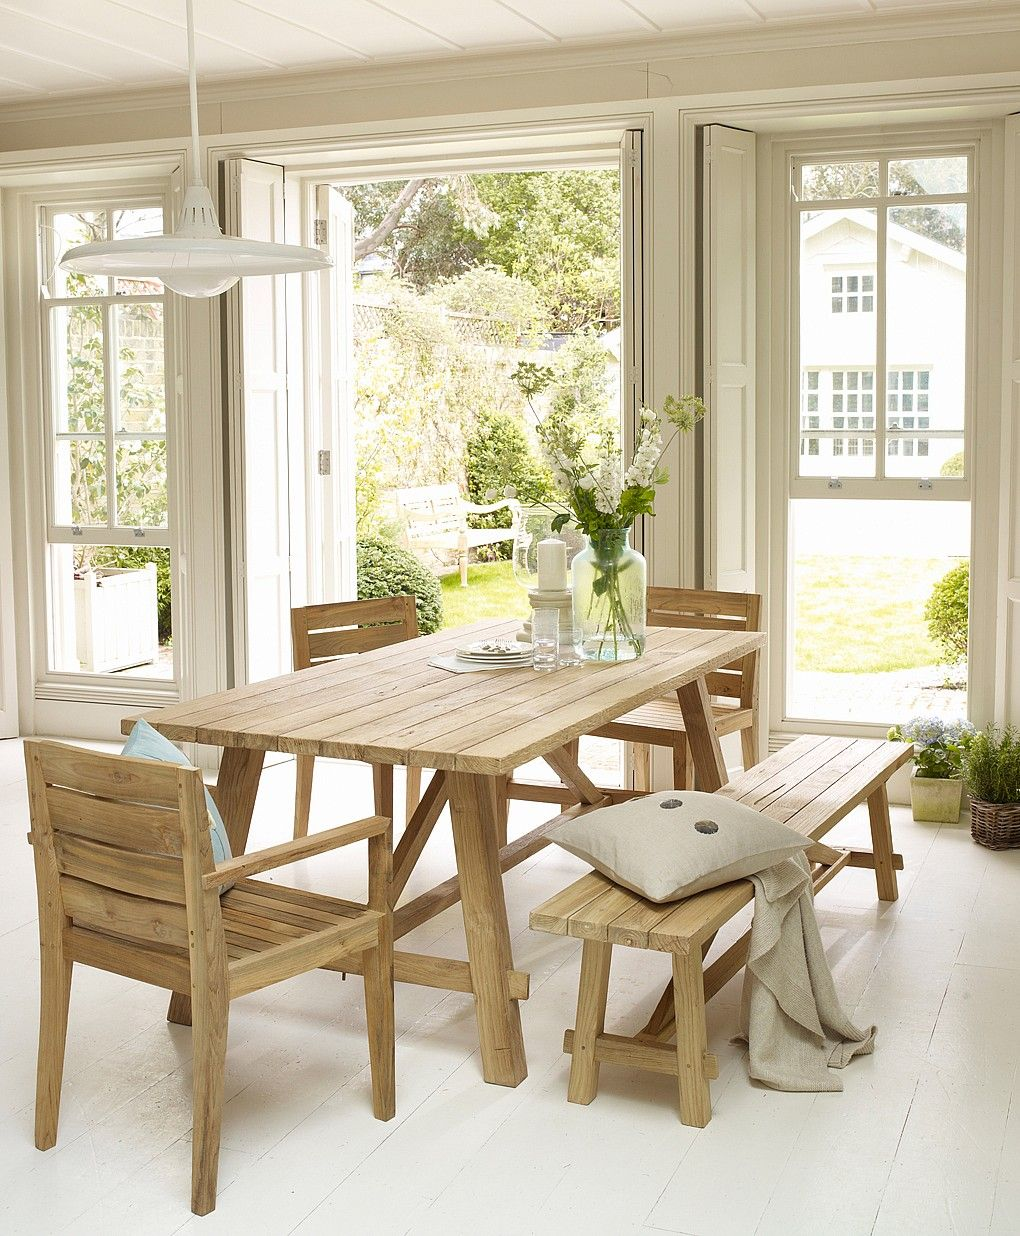 Jepara Outdoor Dining Table From Lombok Furniture